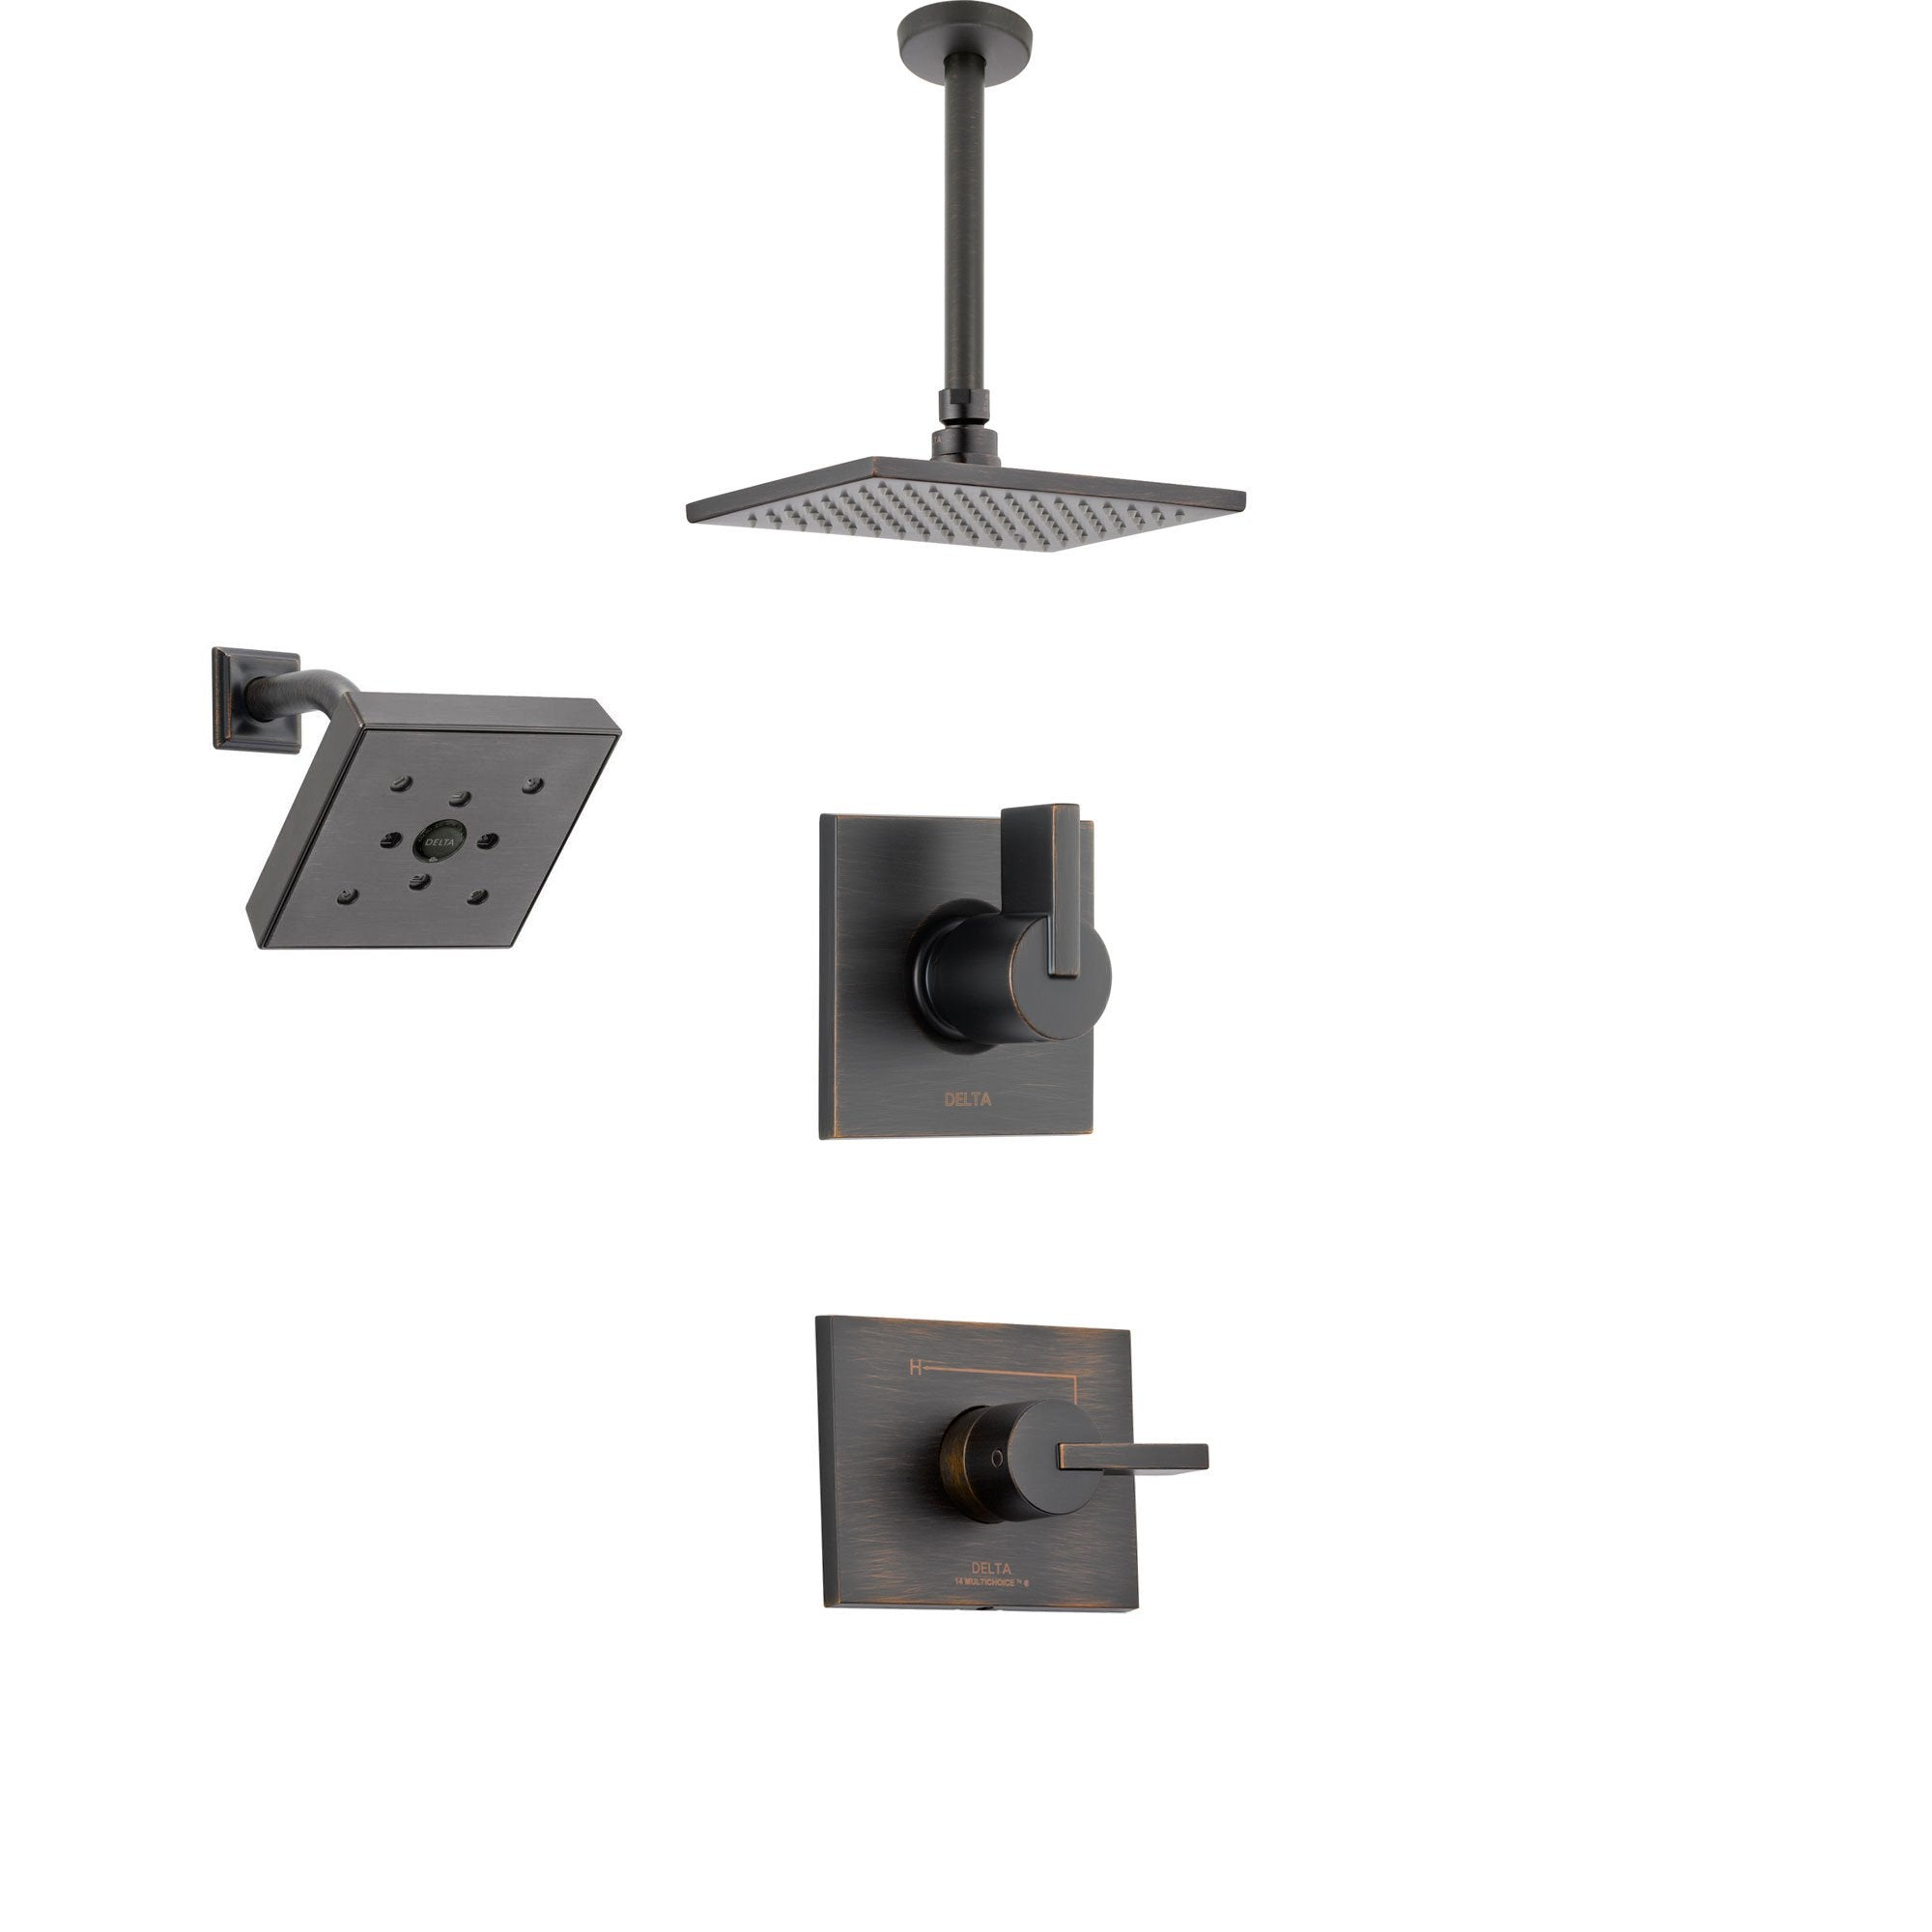 Delta Vero Venetian Bronze Shower System with Normal Shower Handle, 3-setting Diverter, Large Modern Ceiling Mount Rain Showerhead, and Wall Mount Showerhead SS145384RB